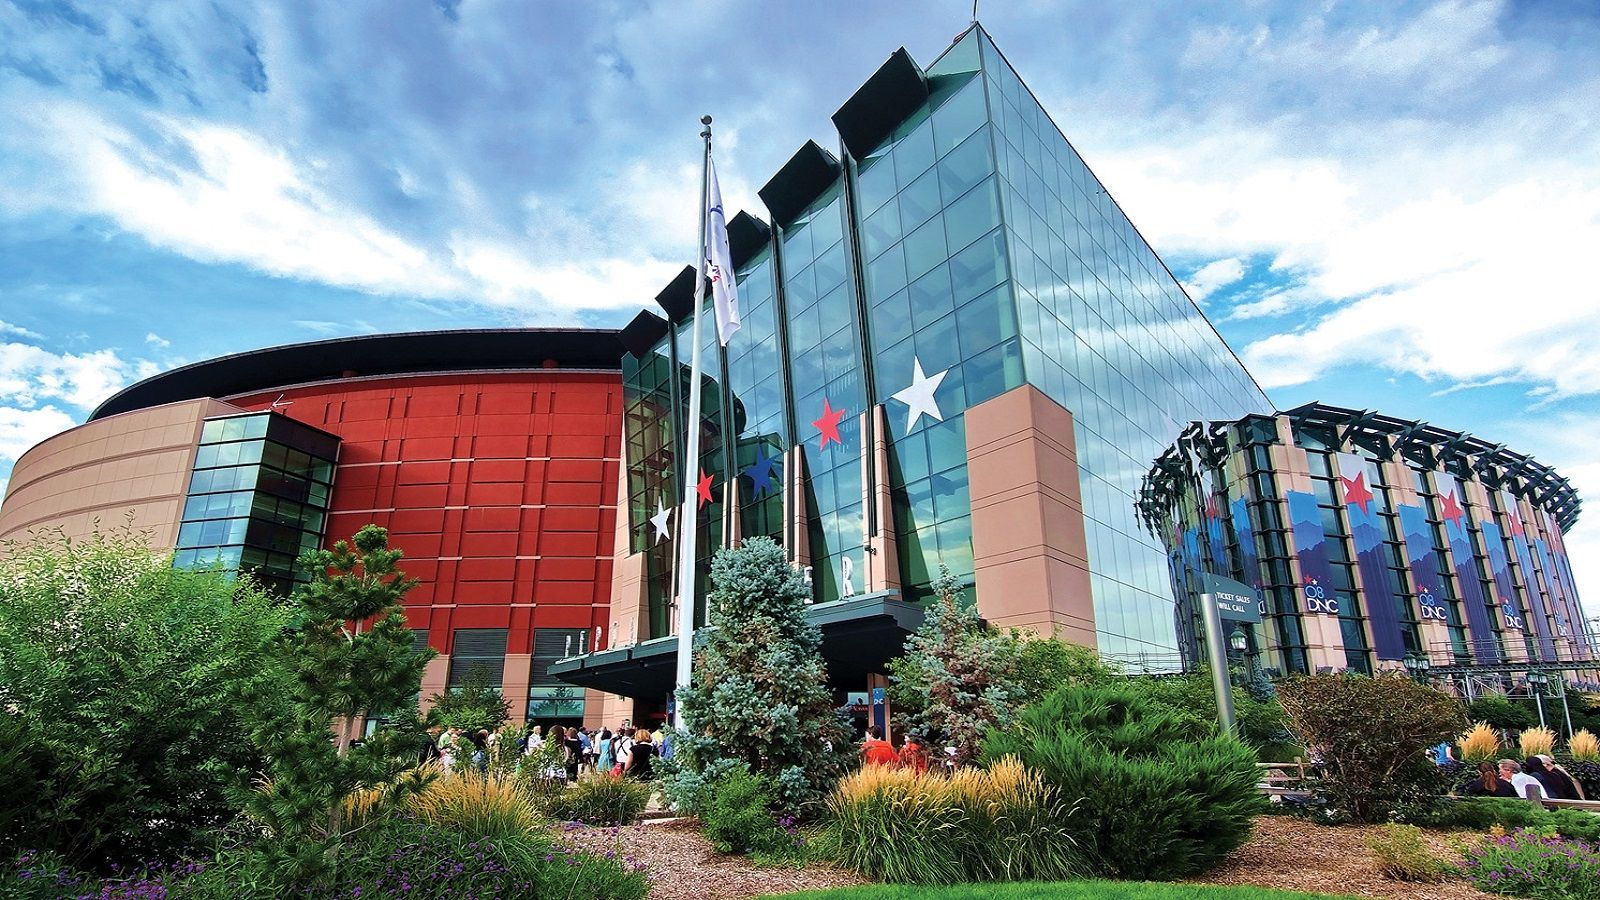 Sheraton Denver West Hotel - Pepsi Center